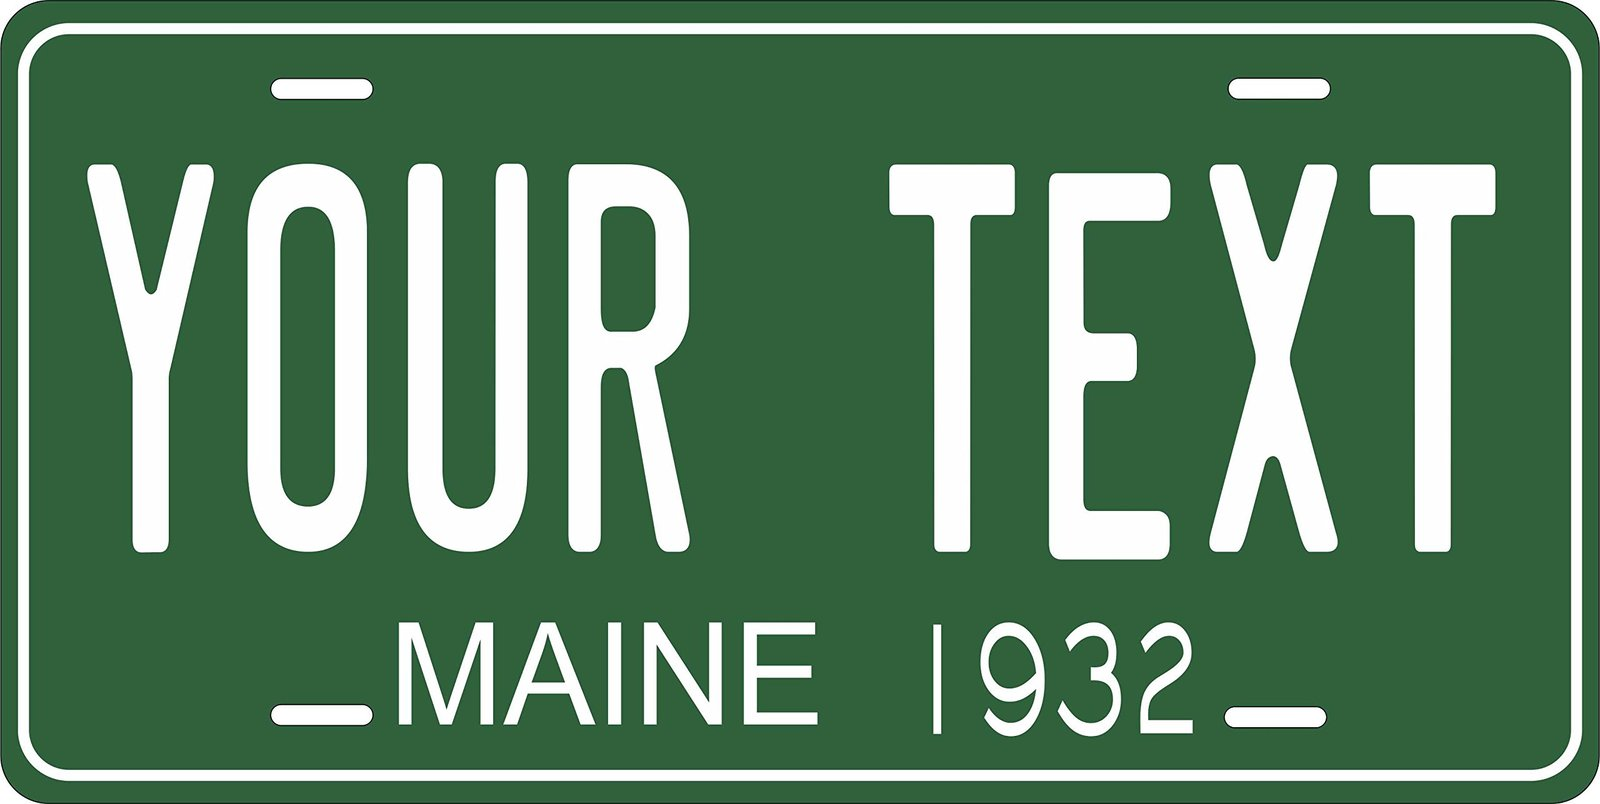 Maine 1932 Personalized Tag Vehicle Car Auto License Plate